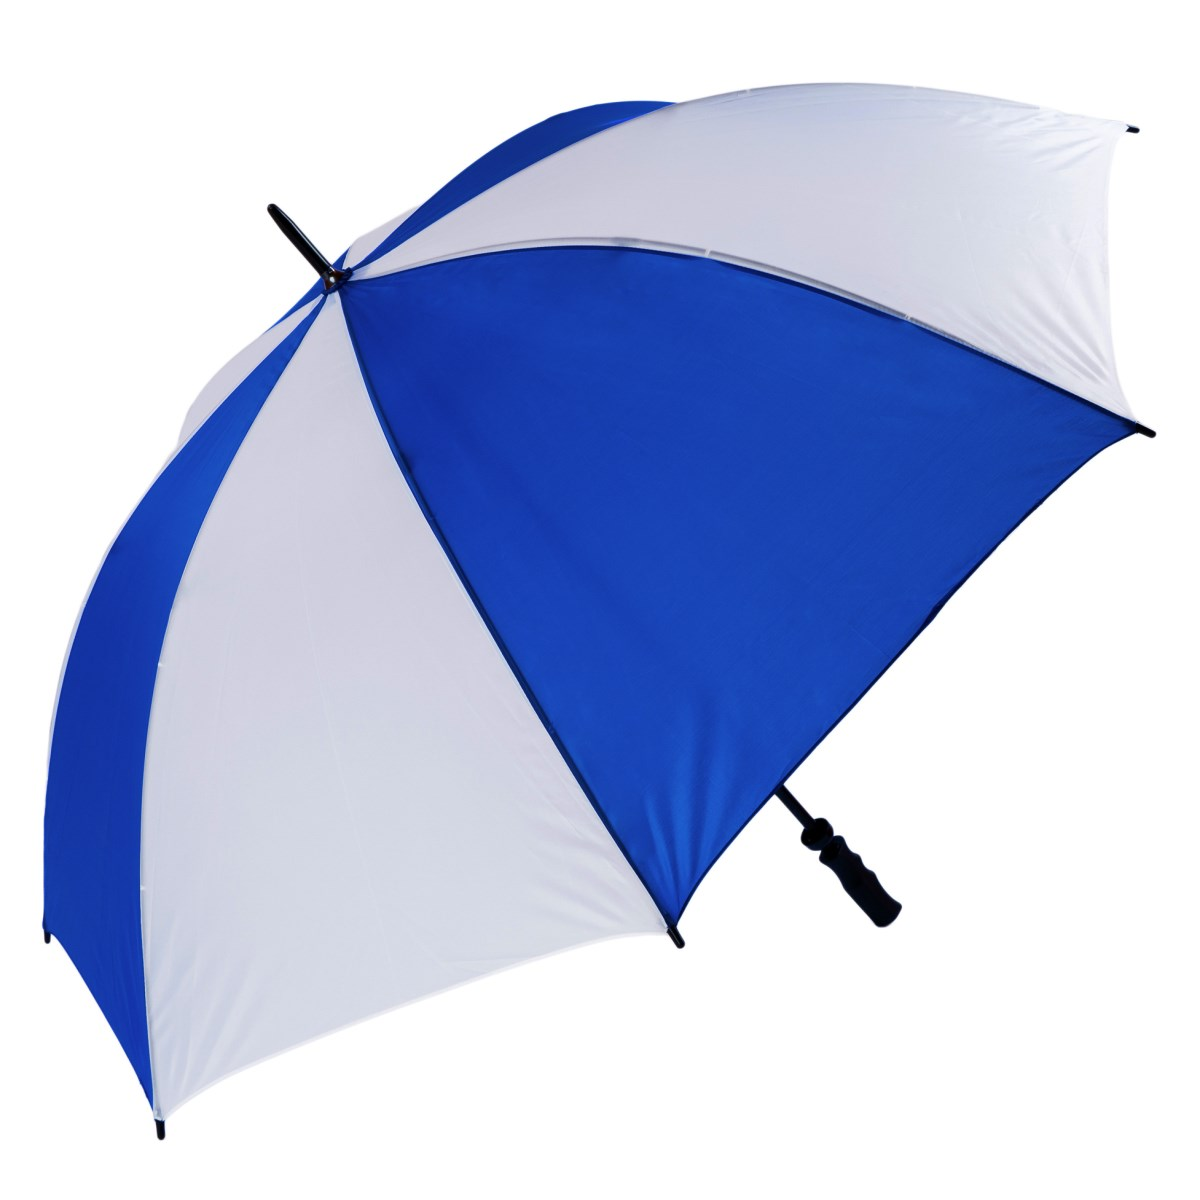 Wind Resistant Fibrelight Large Royal Blue & White Golf Umbrella (3473)